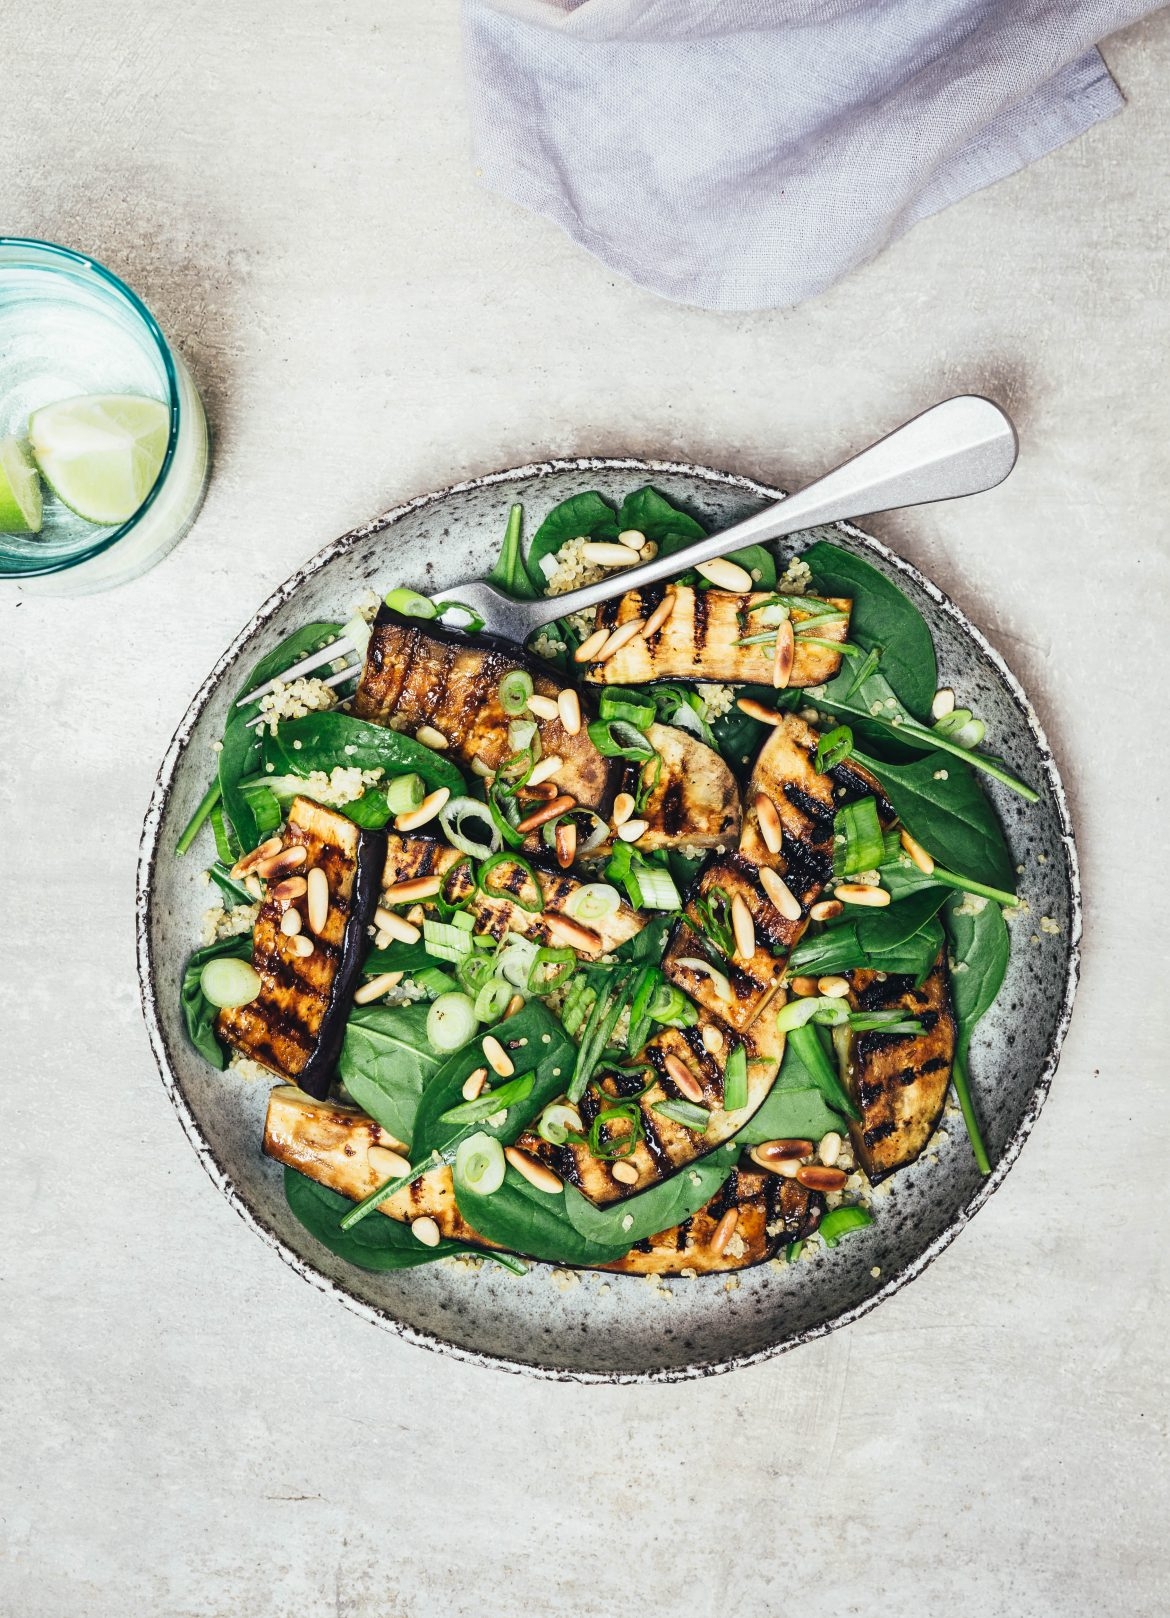 Grillet auberginesalat med spicy barbeque marinade